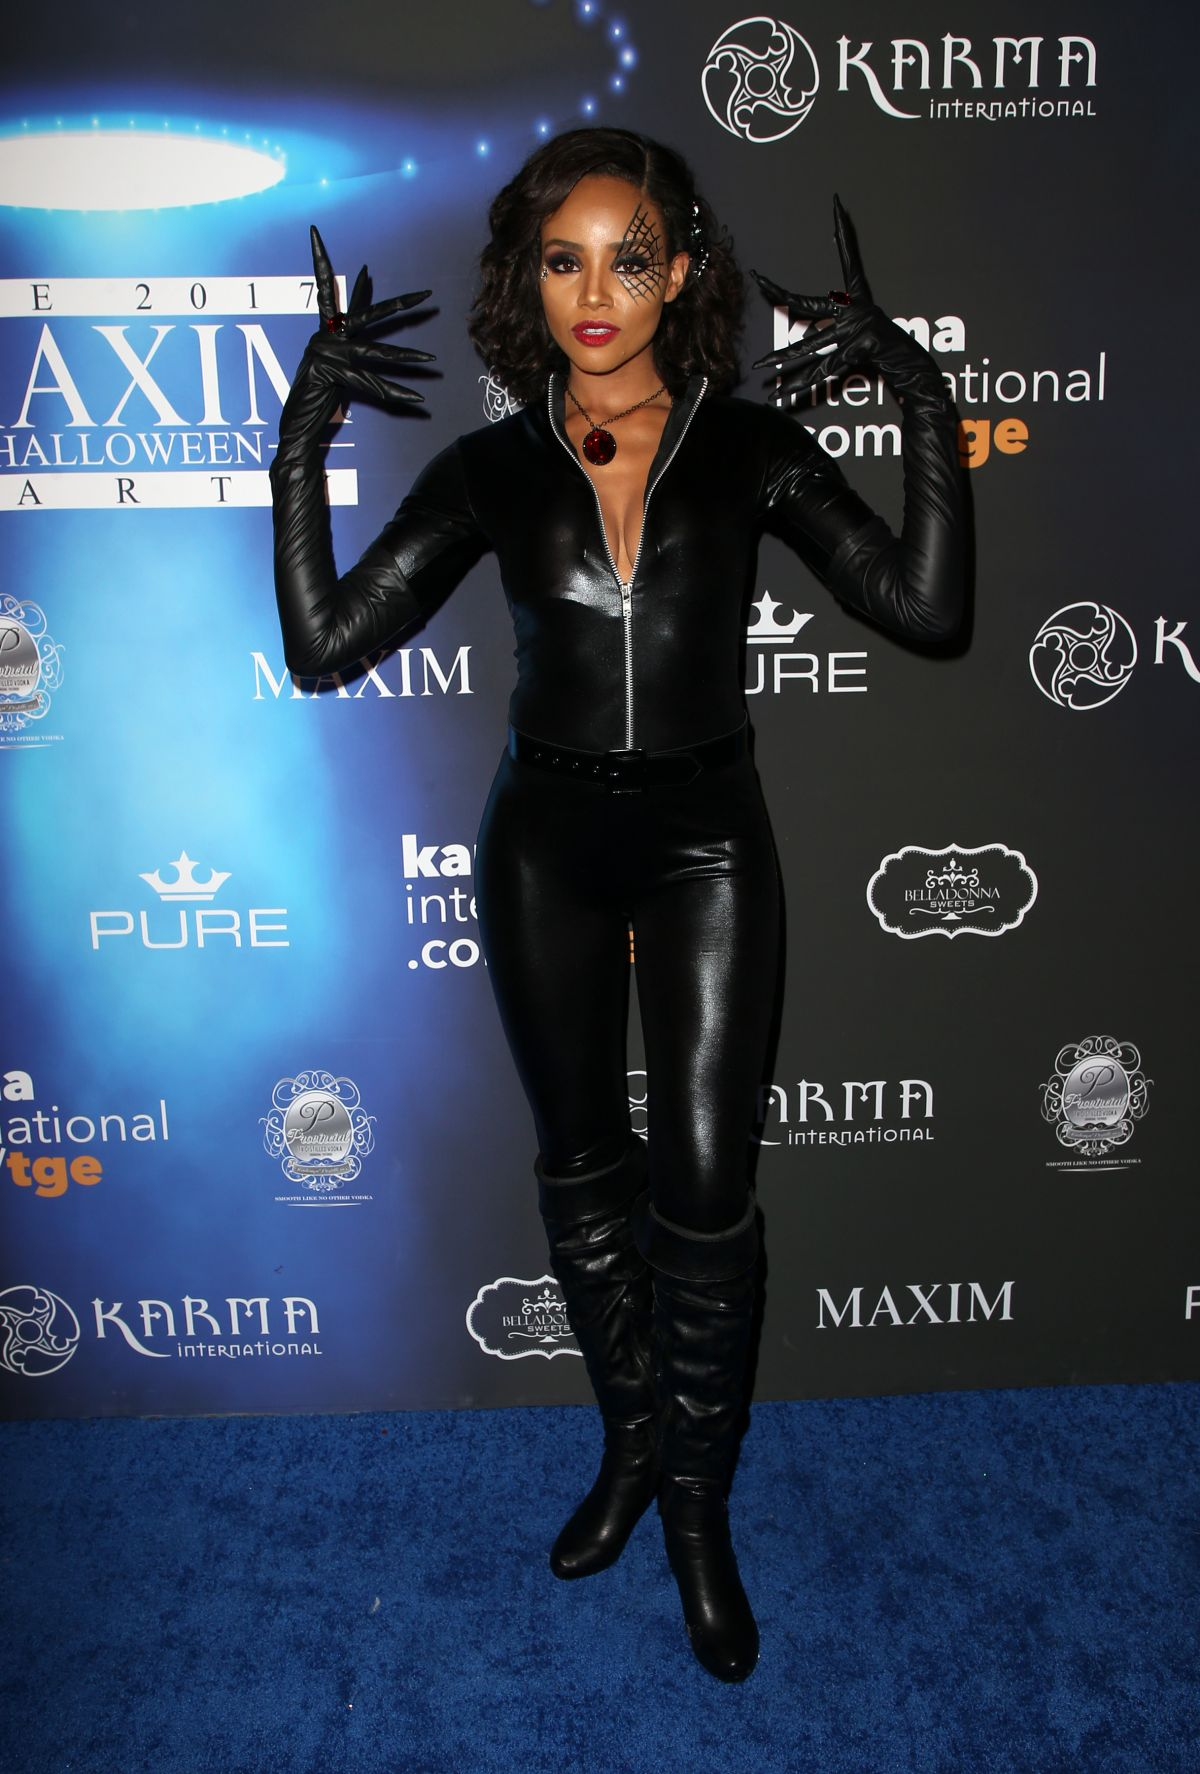 Mercedes Los Angeles >> MEAGAN TANDY at 2017 Maxim Halloween Party in Los Angeles ...